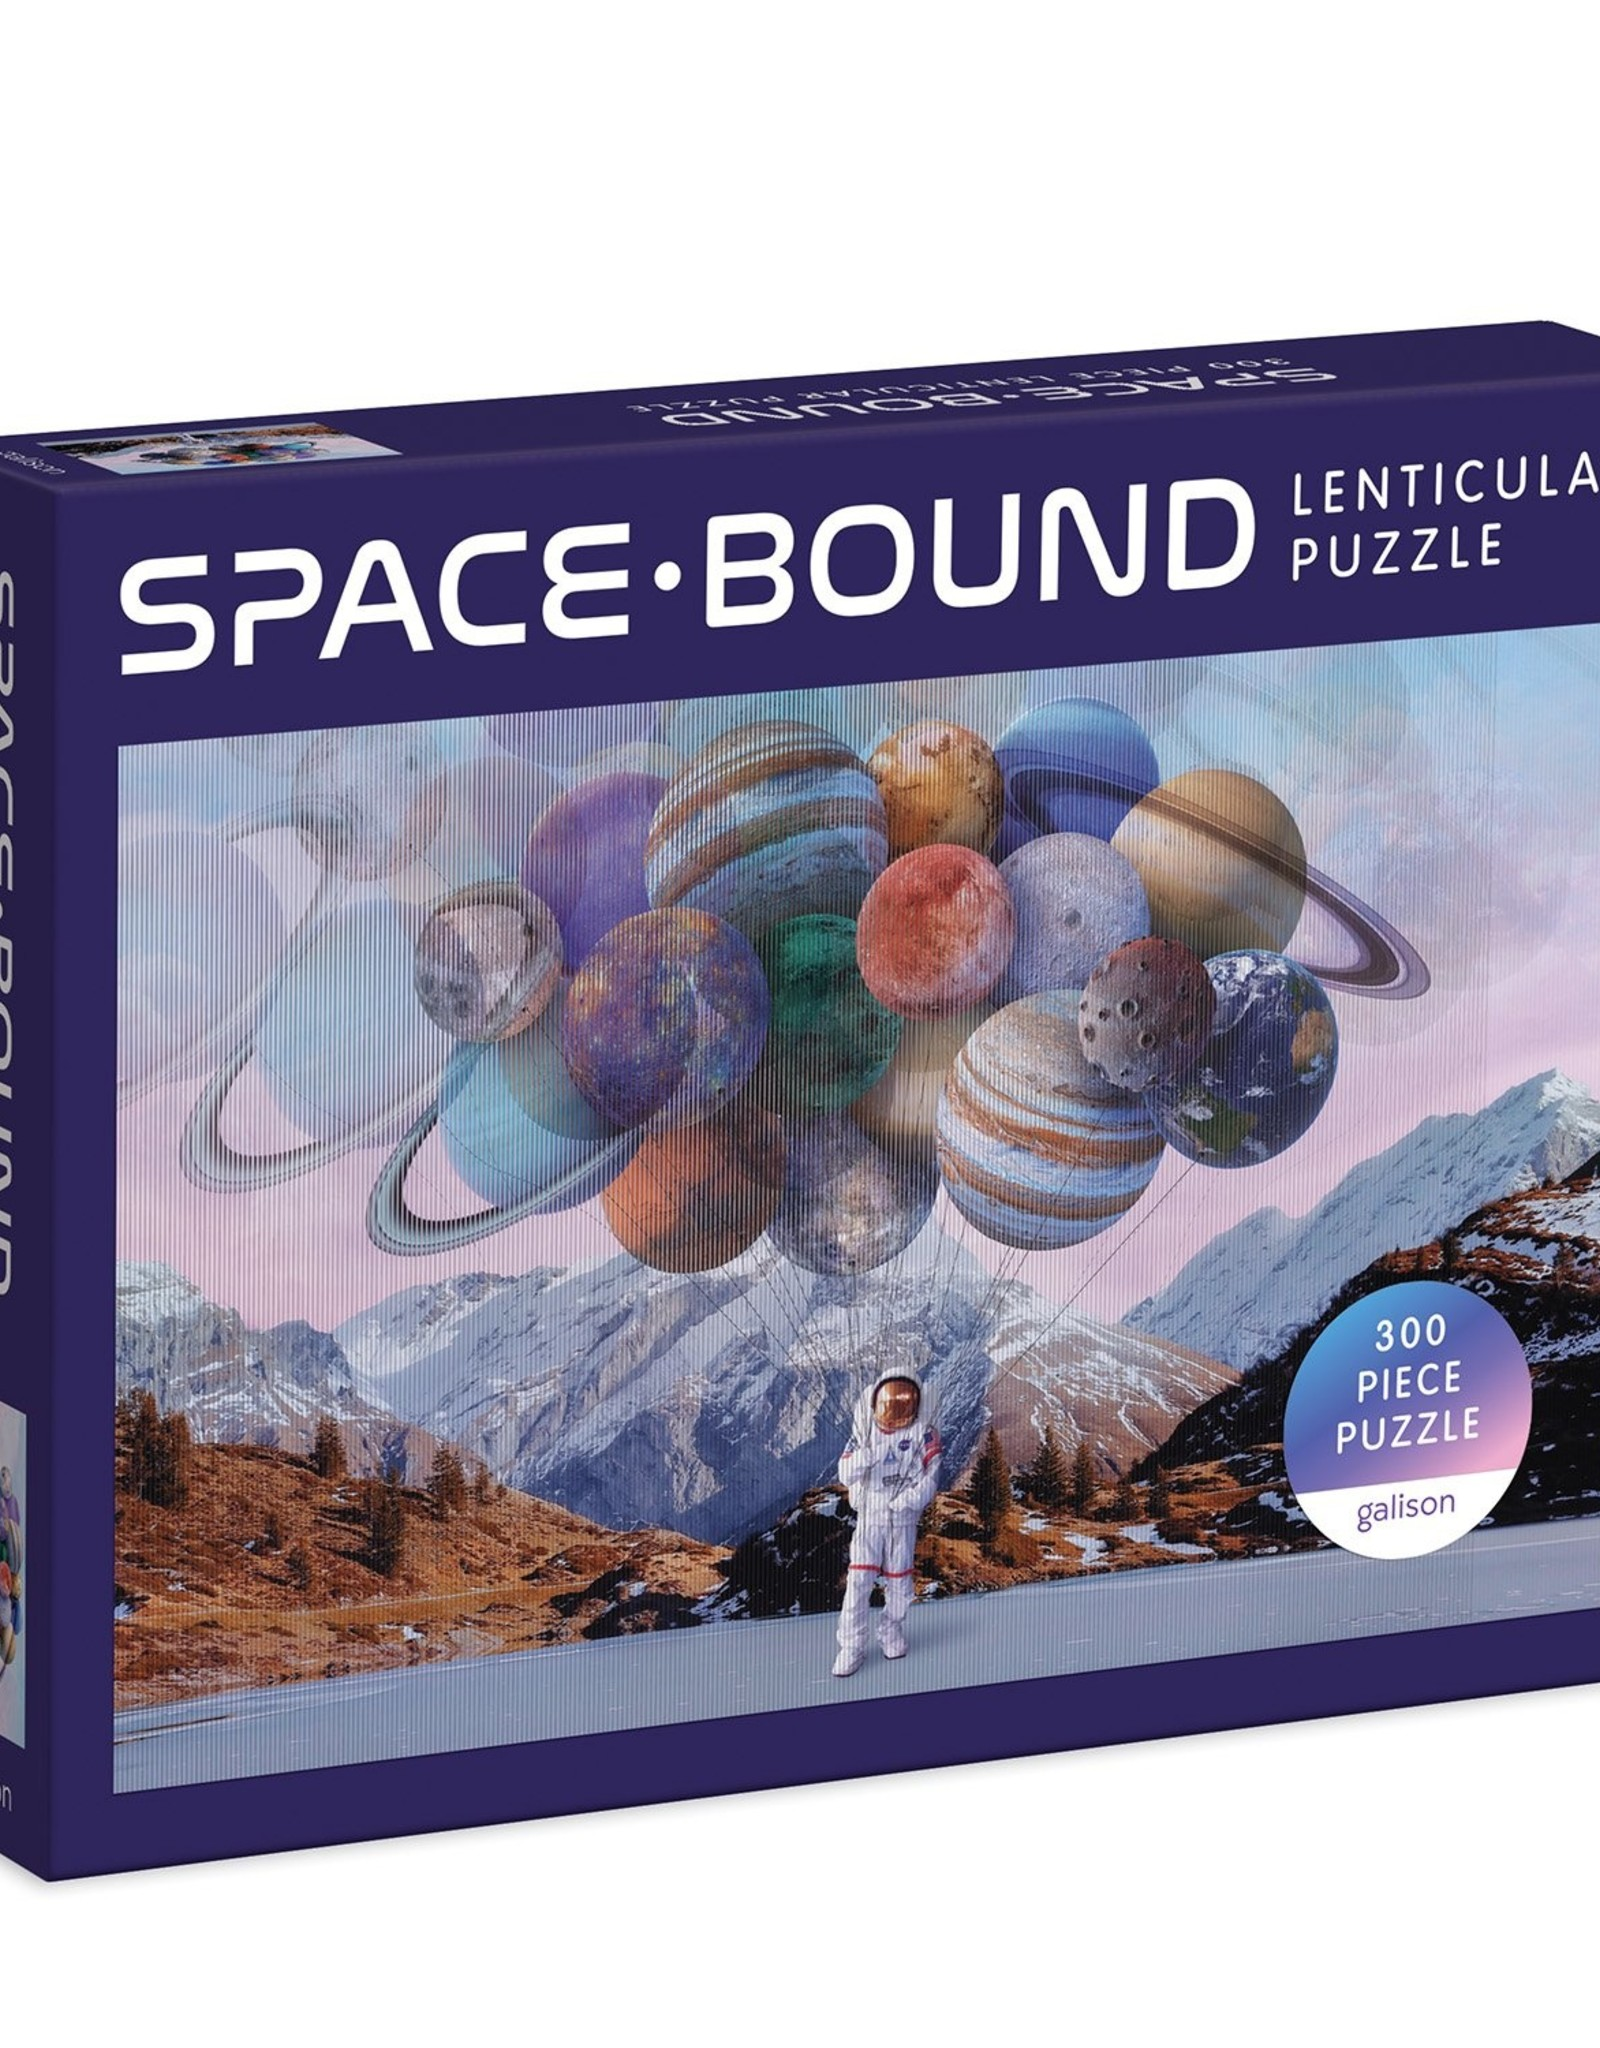 Chronicle Books Lenticular Puzzle - 300 Piece Space Bound